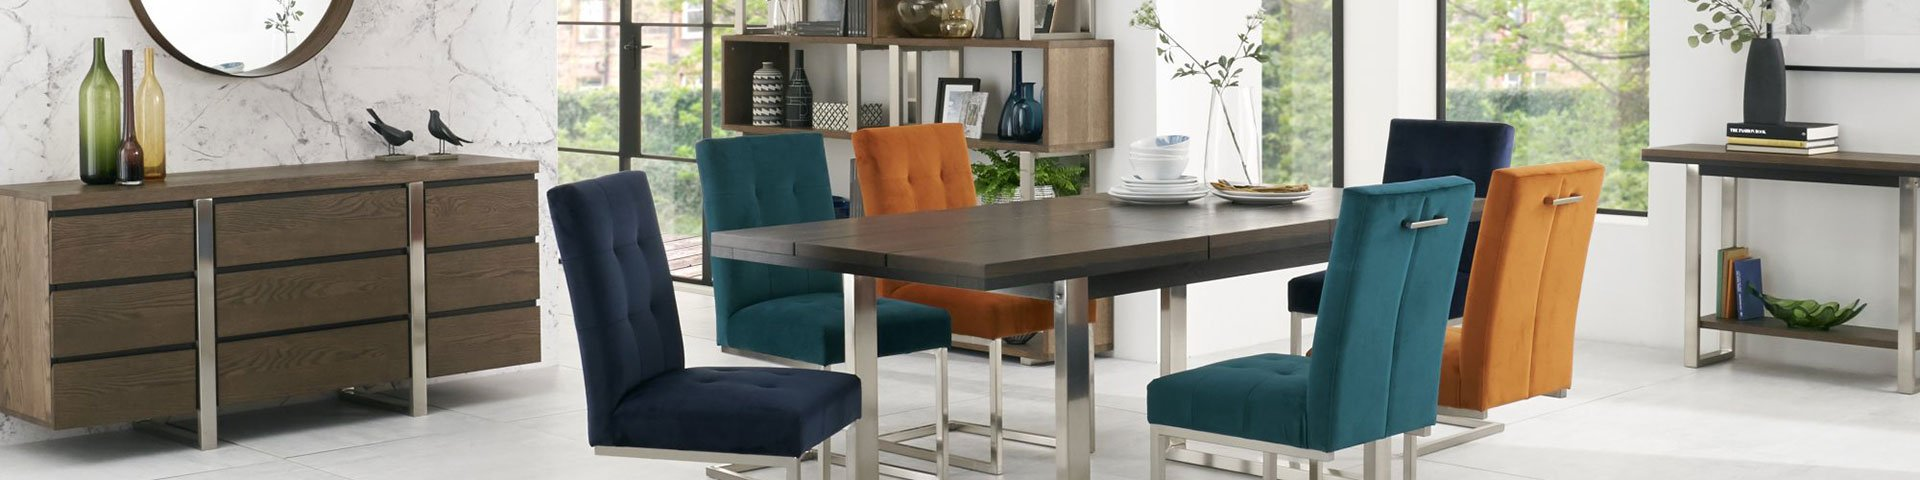 Dining Room Furniture at Abode Furniture